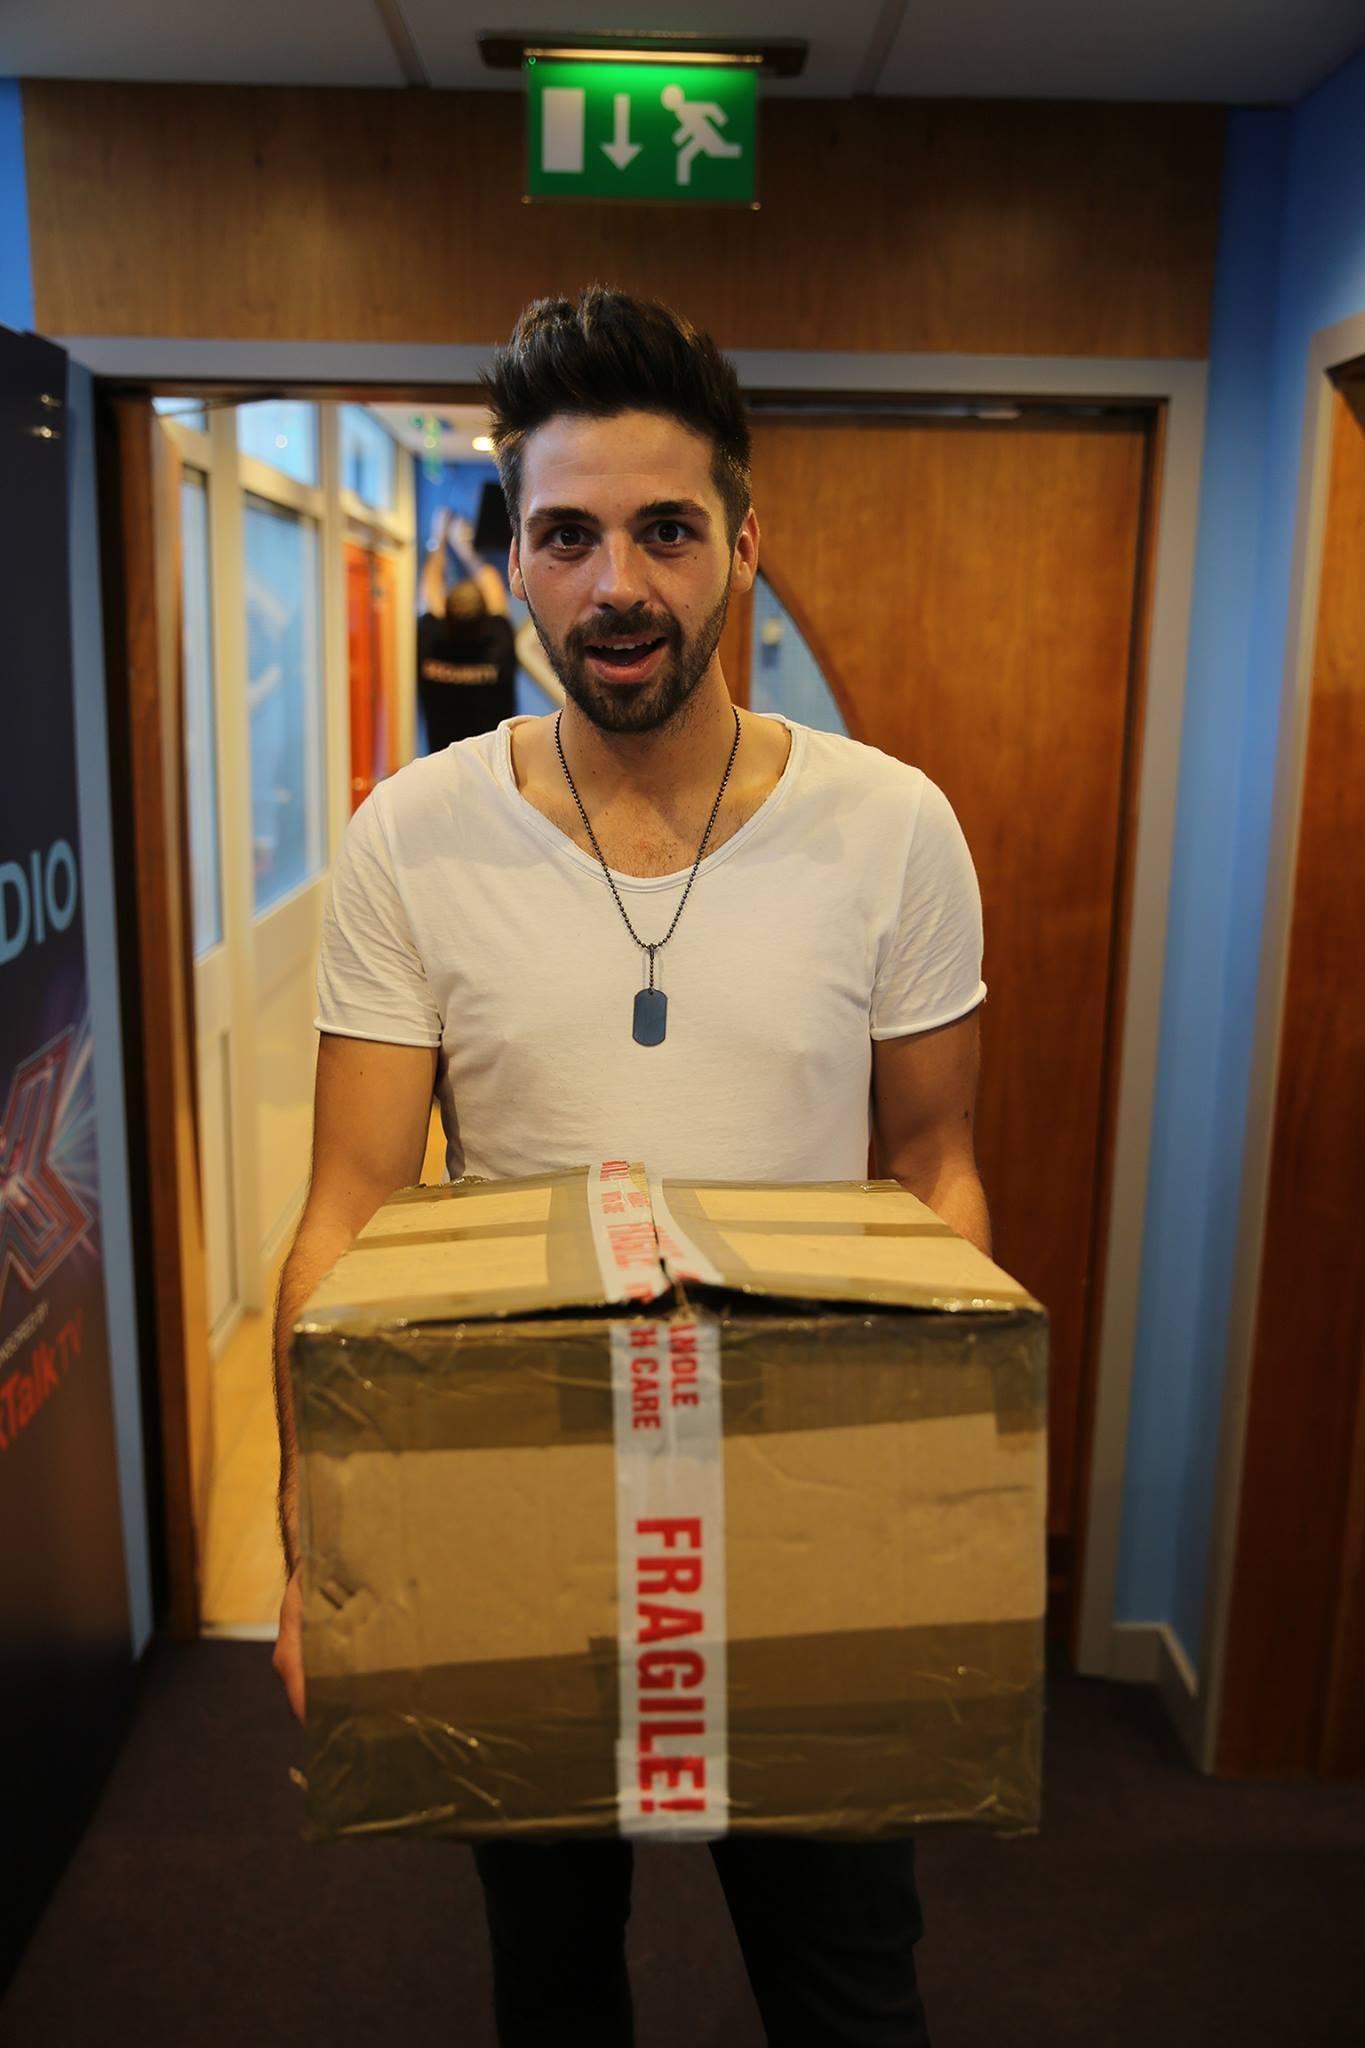 There's no better way to welcome Monday than with @BHaenow and his big package - just ask Louis! http://t.co/15l8tQ2dhp